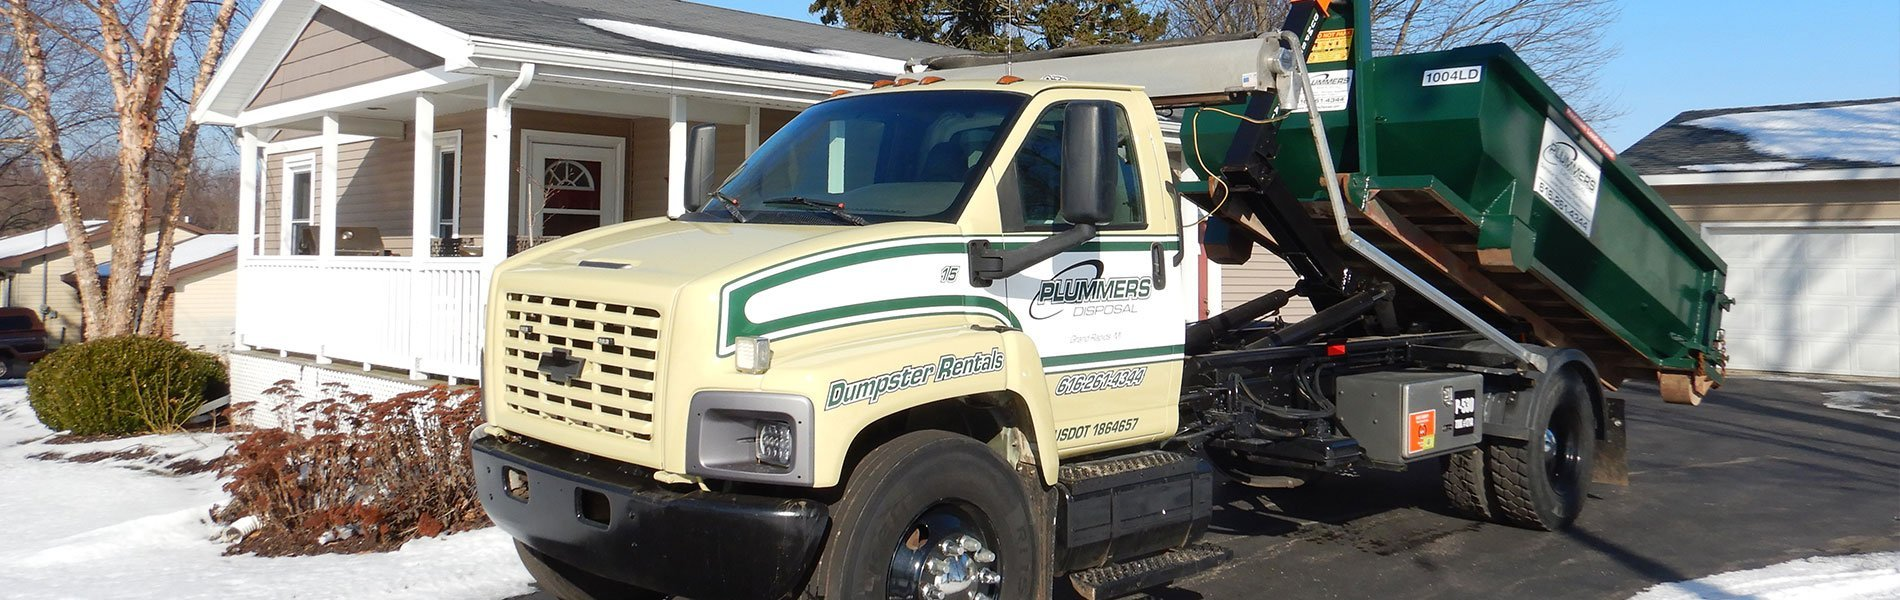 Roll Off Dumpster from Plummers Disposal Services